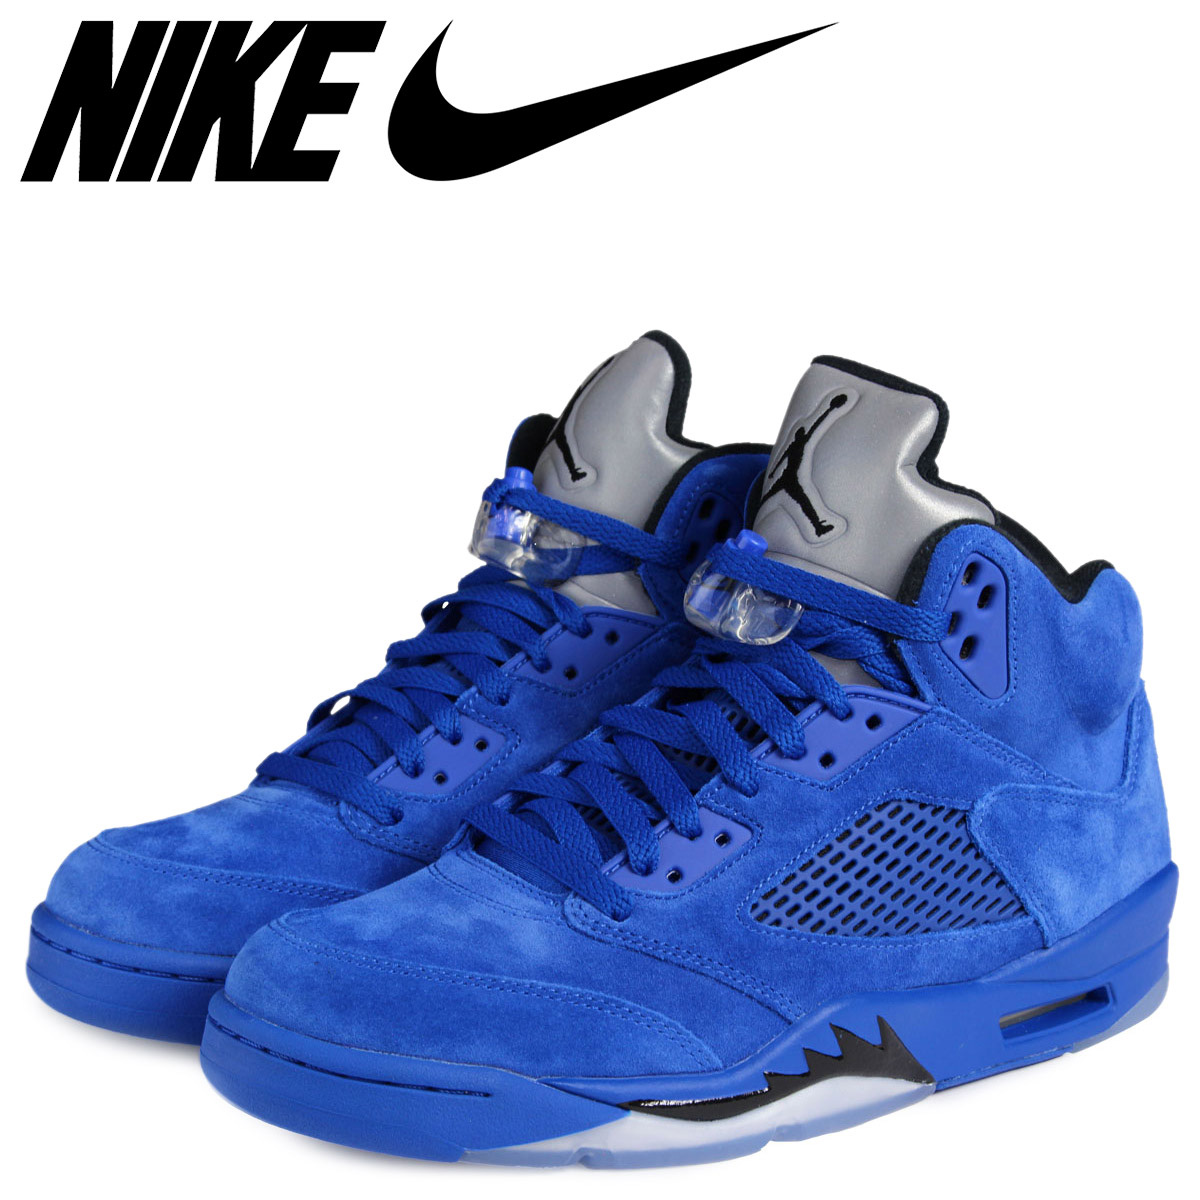 promo code 5fe0a 15544 NIKE Nike Air Jordan 5 nostalgic sneakers AIR JORDAN 5 RETRO BLUE SUEDE  136,027-401 men's shoes blue